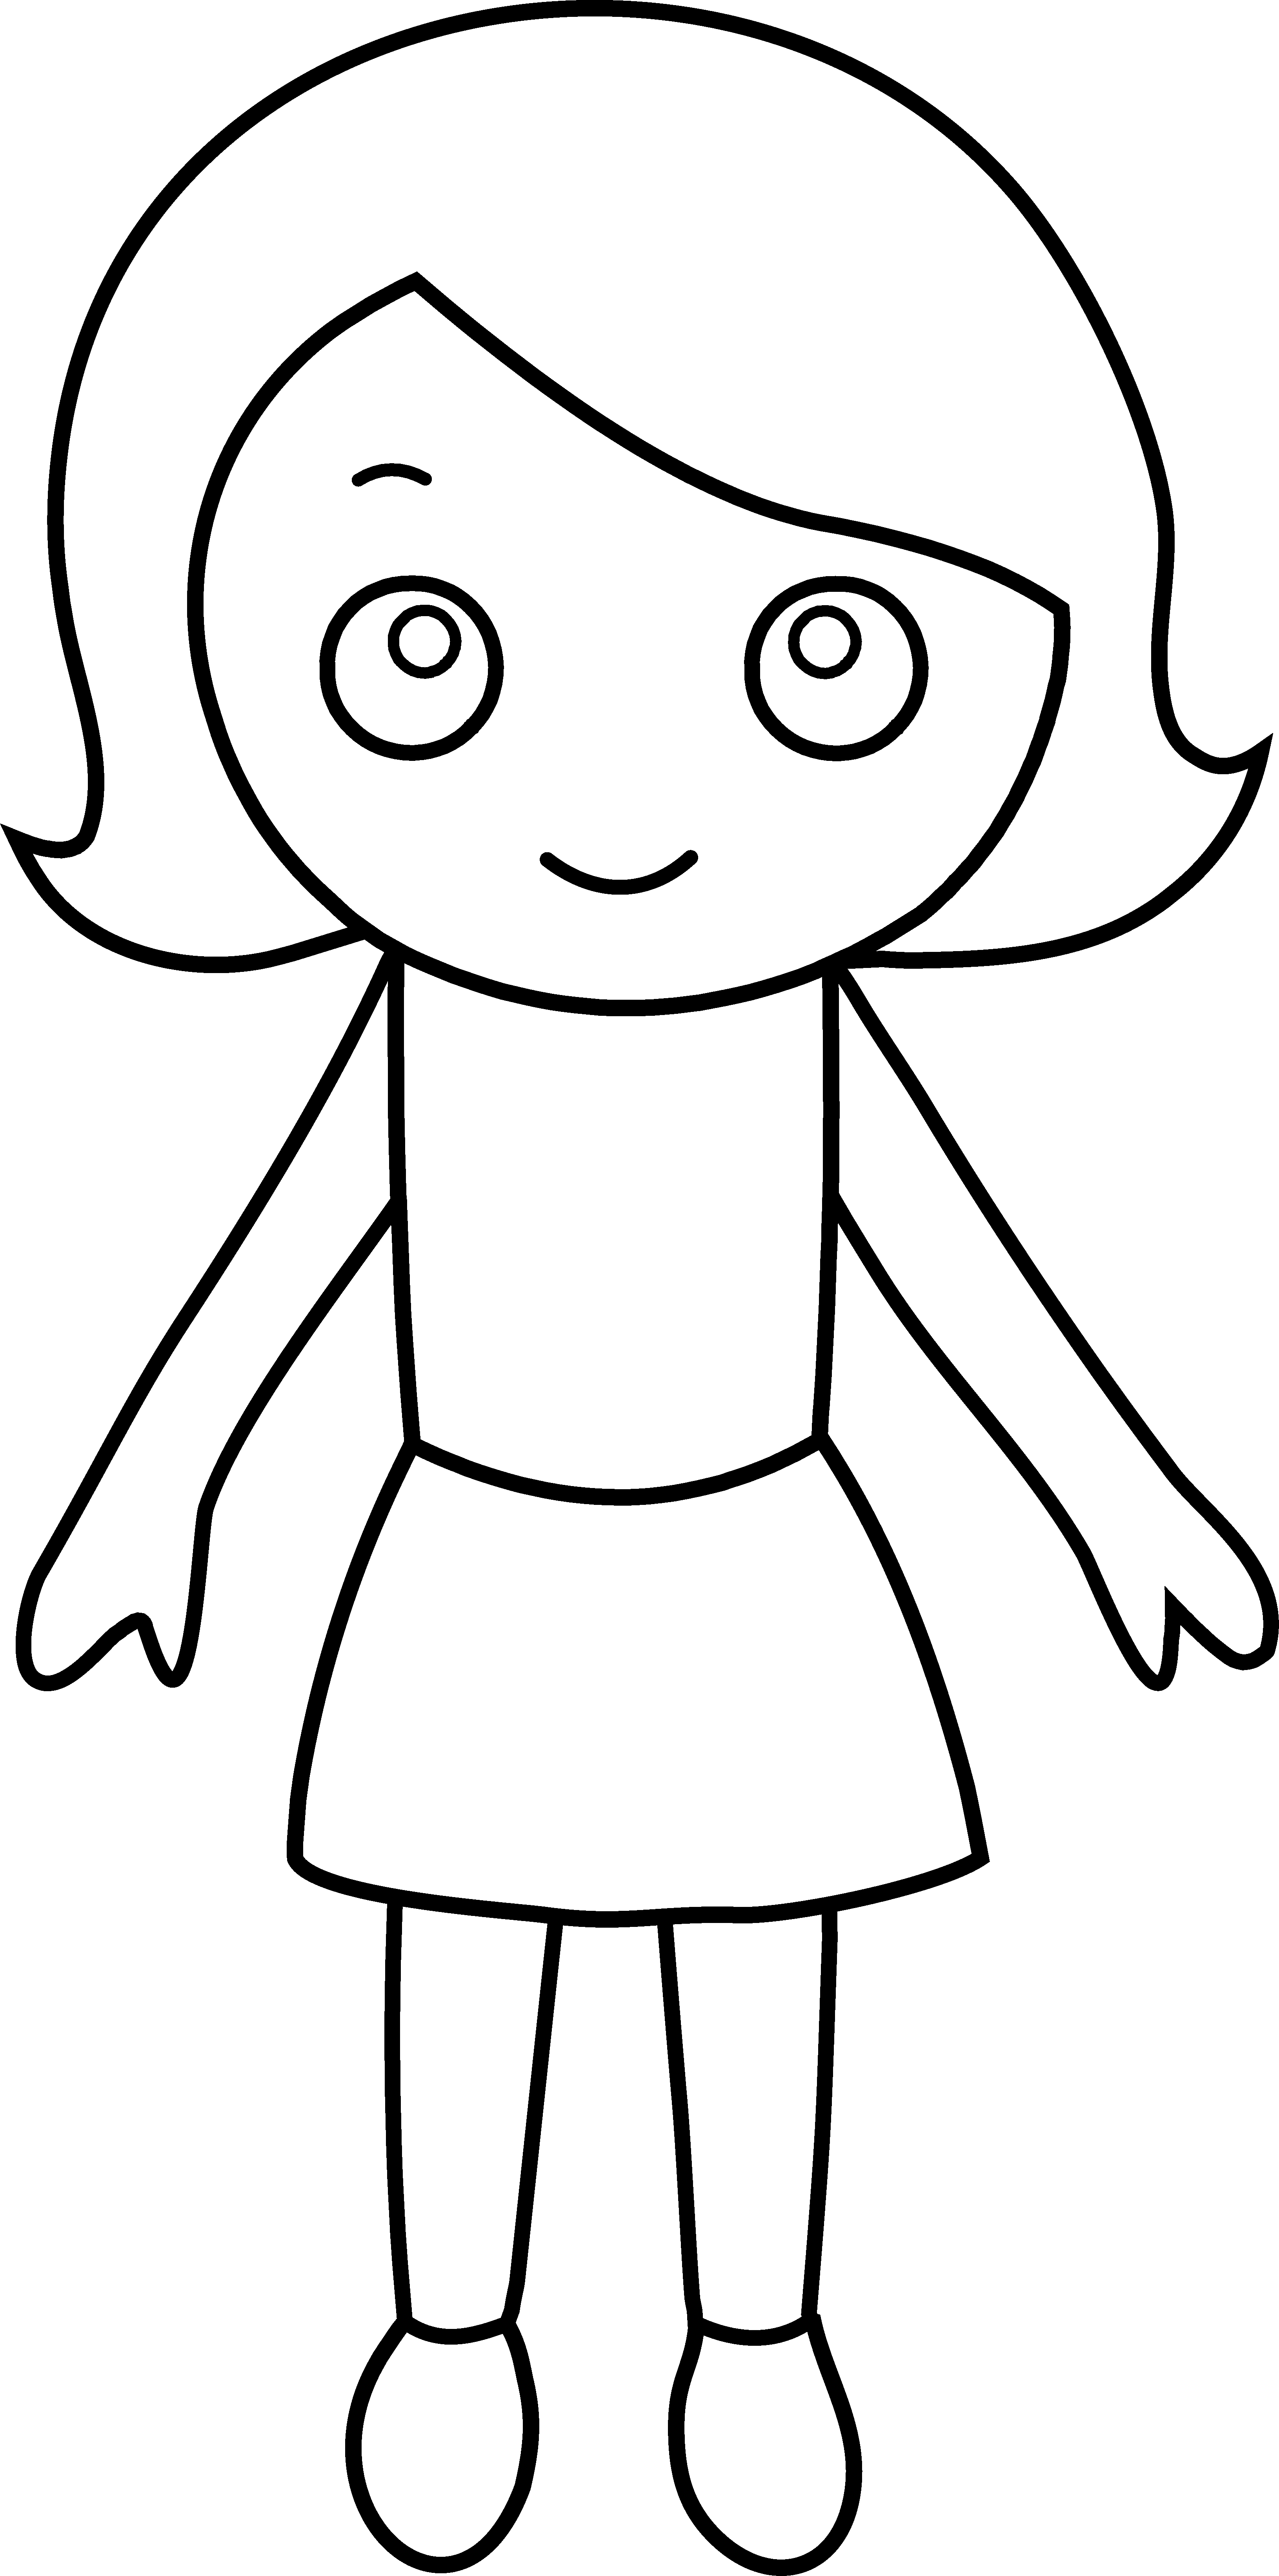 outline for coloring simple fish coloring pages download and print for free outline coloring for